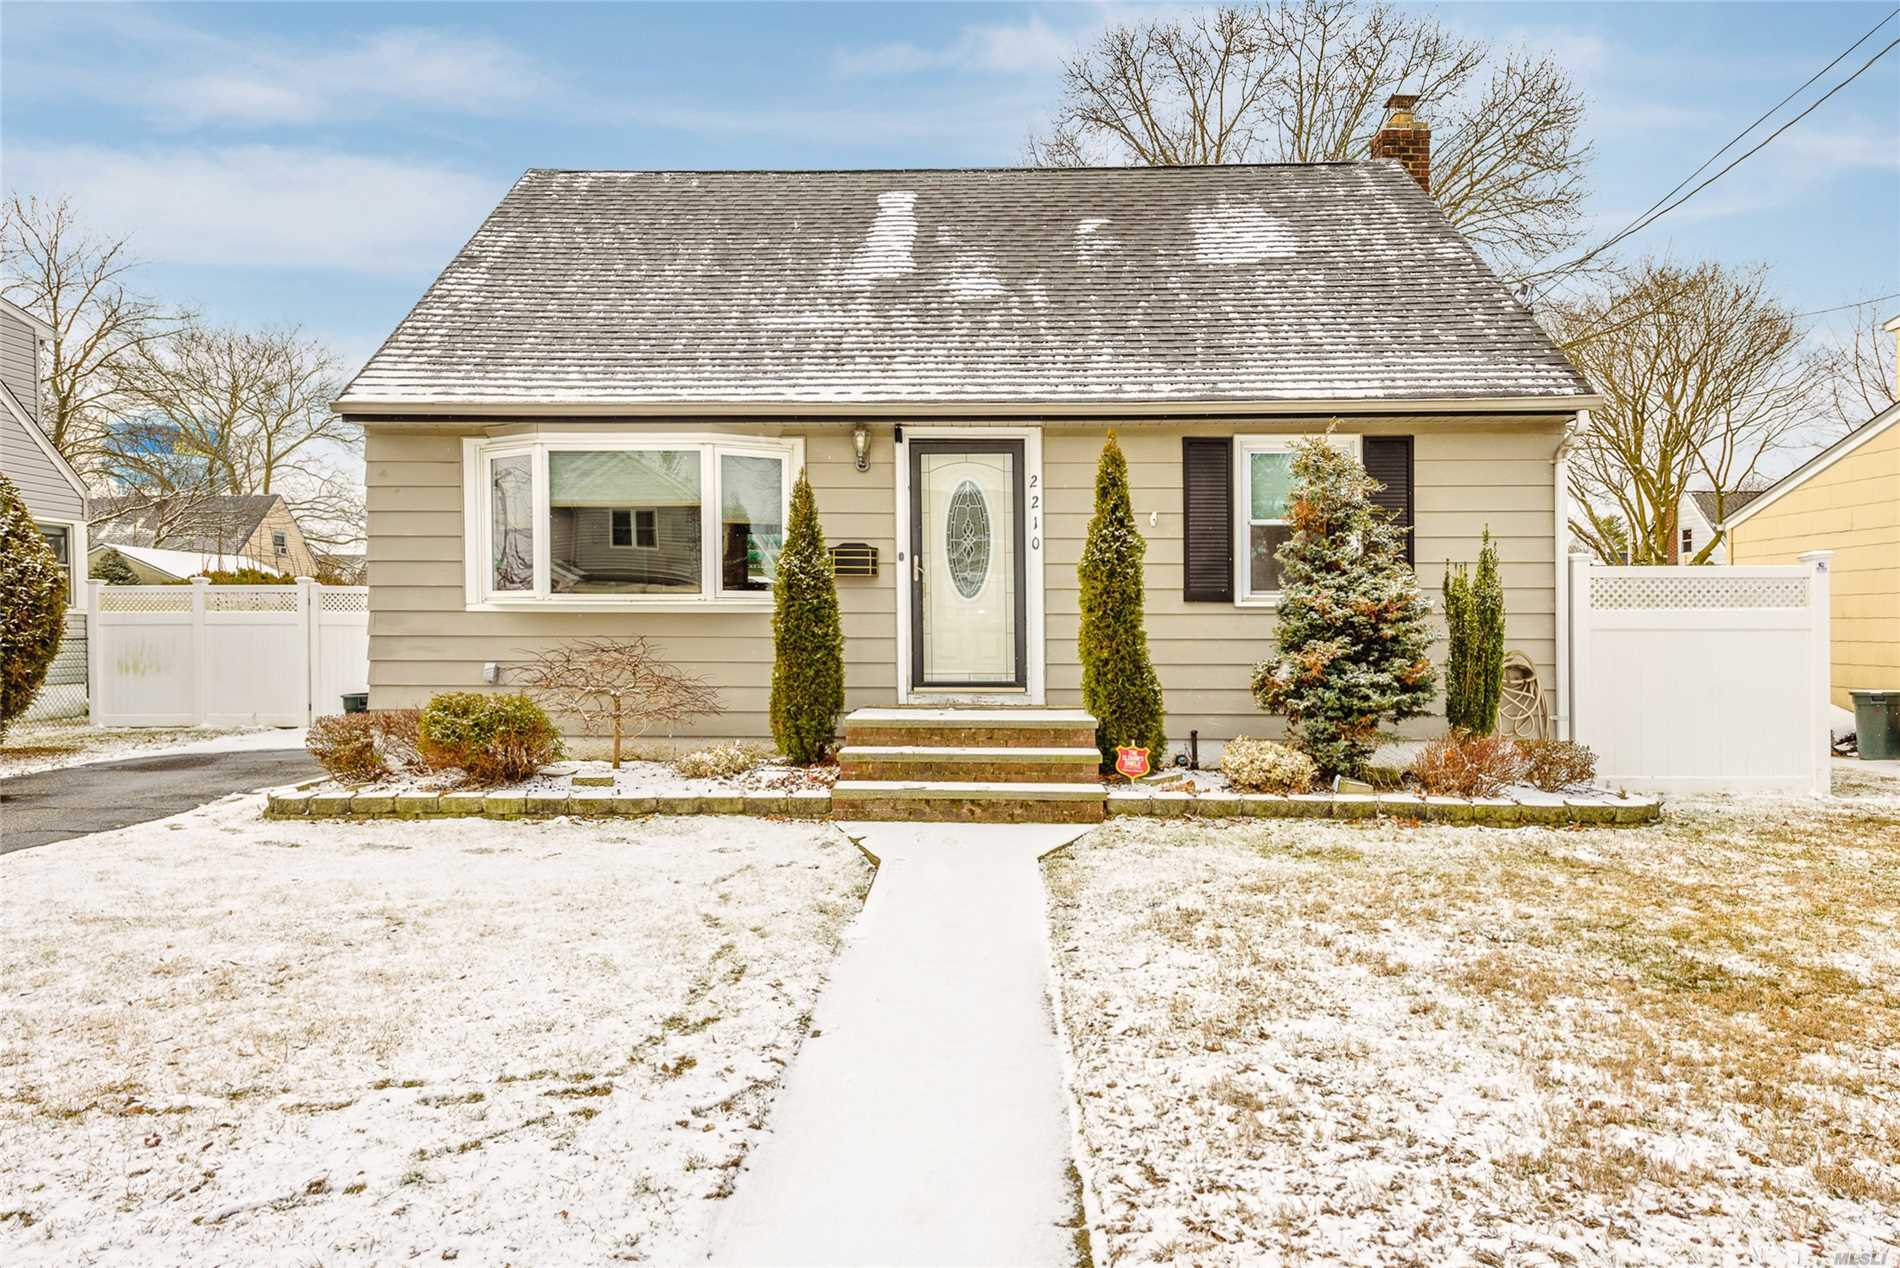 2210 6th St - East Meadow, New York